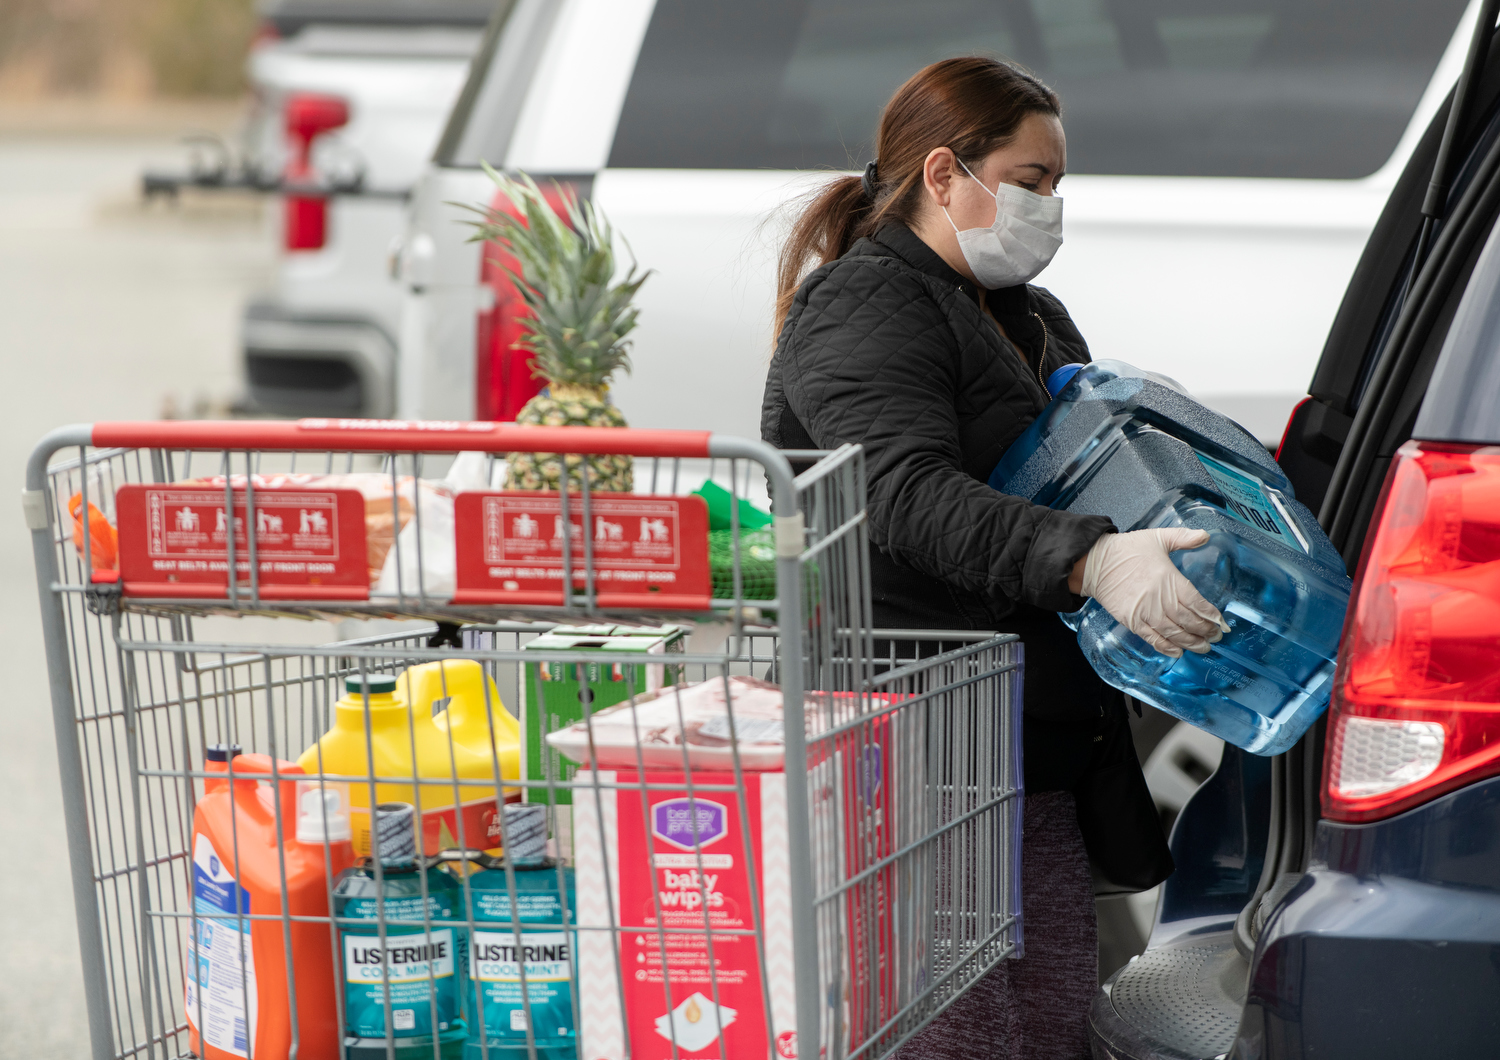 HYANNIS - A masked shopper loads up her minivan with supplies in the BJ's Superstore parking lot on Monday, March 23, 2020.